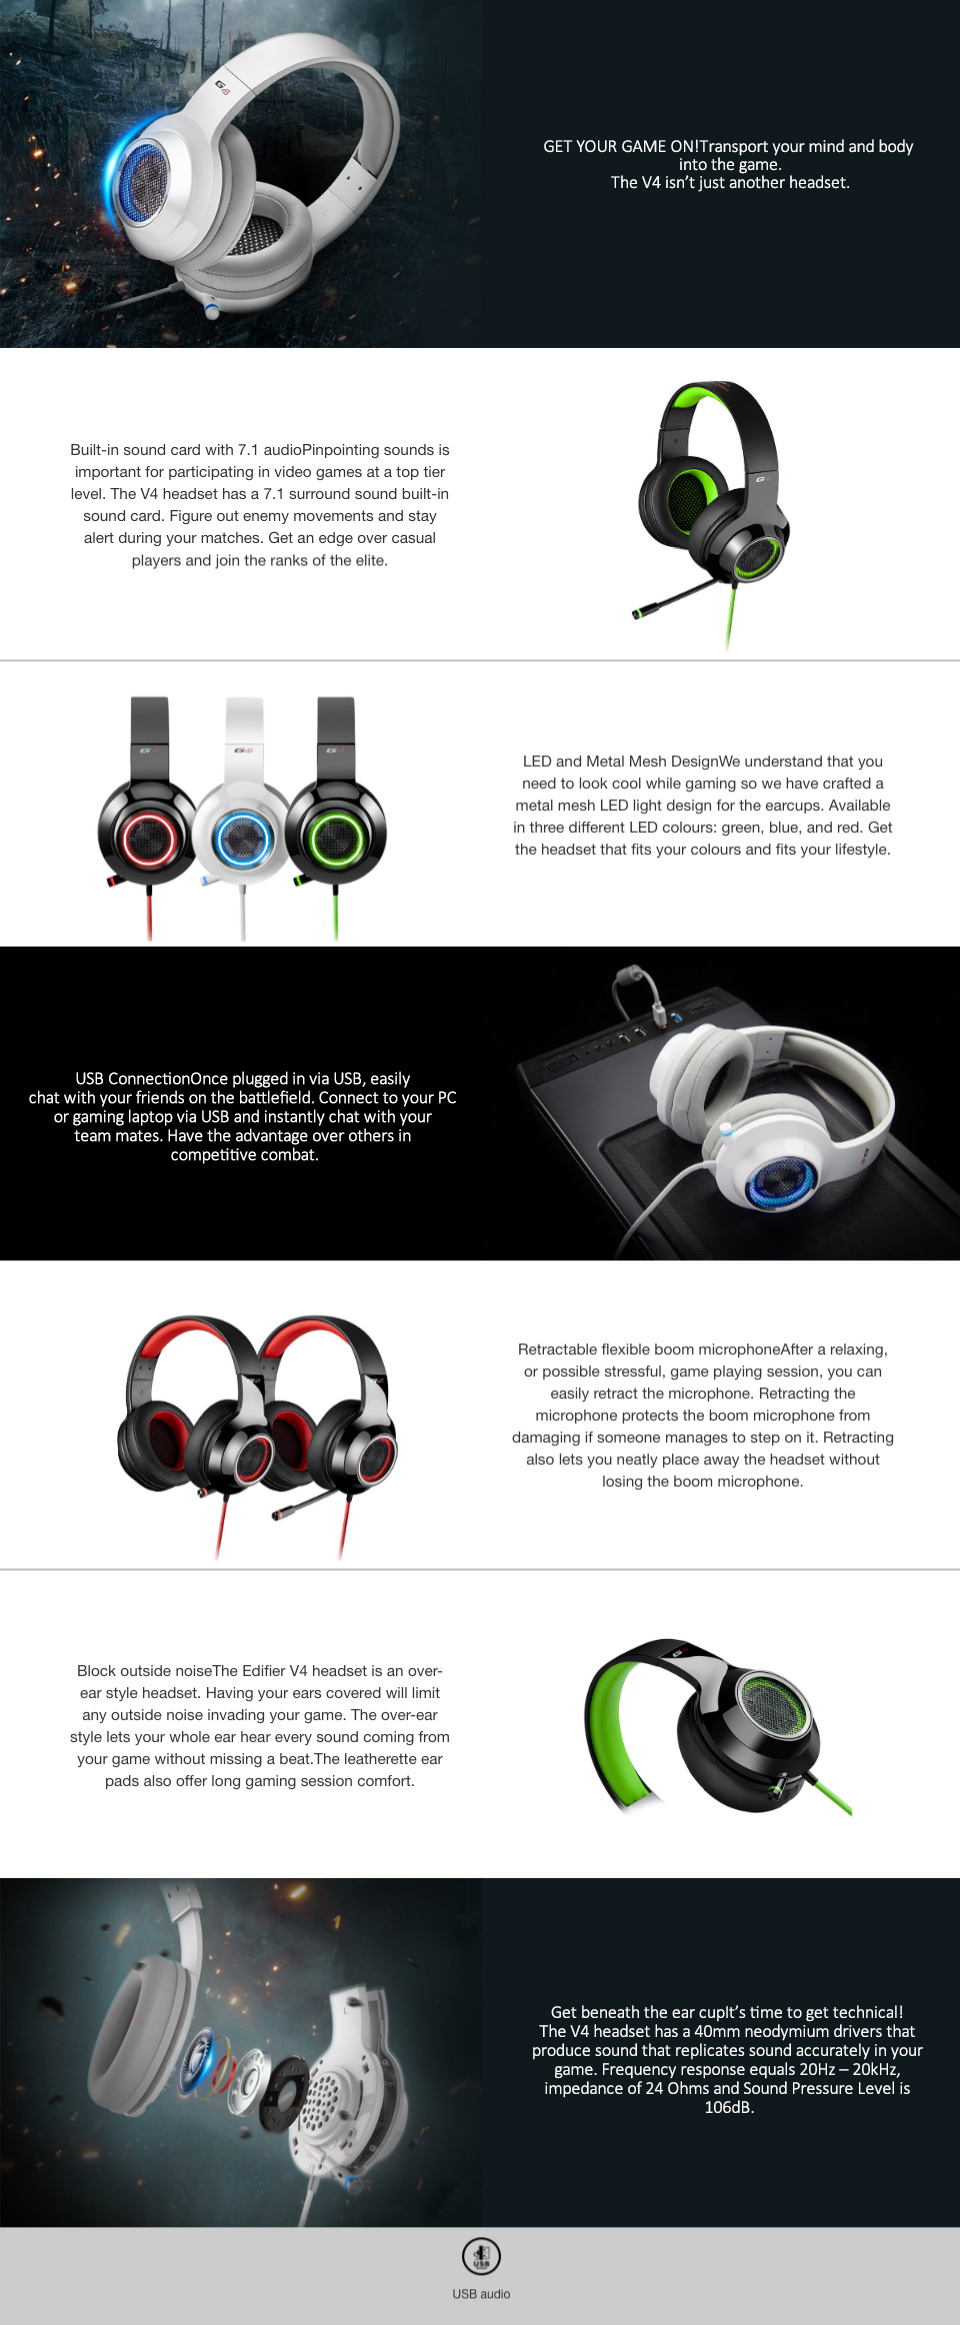 Edifier V4 (G4) 7.1 Virtual Surround Sound Gaming Headset White features